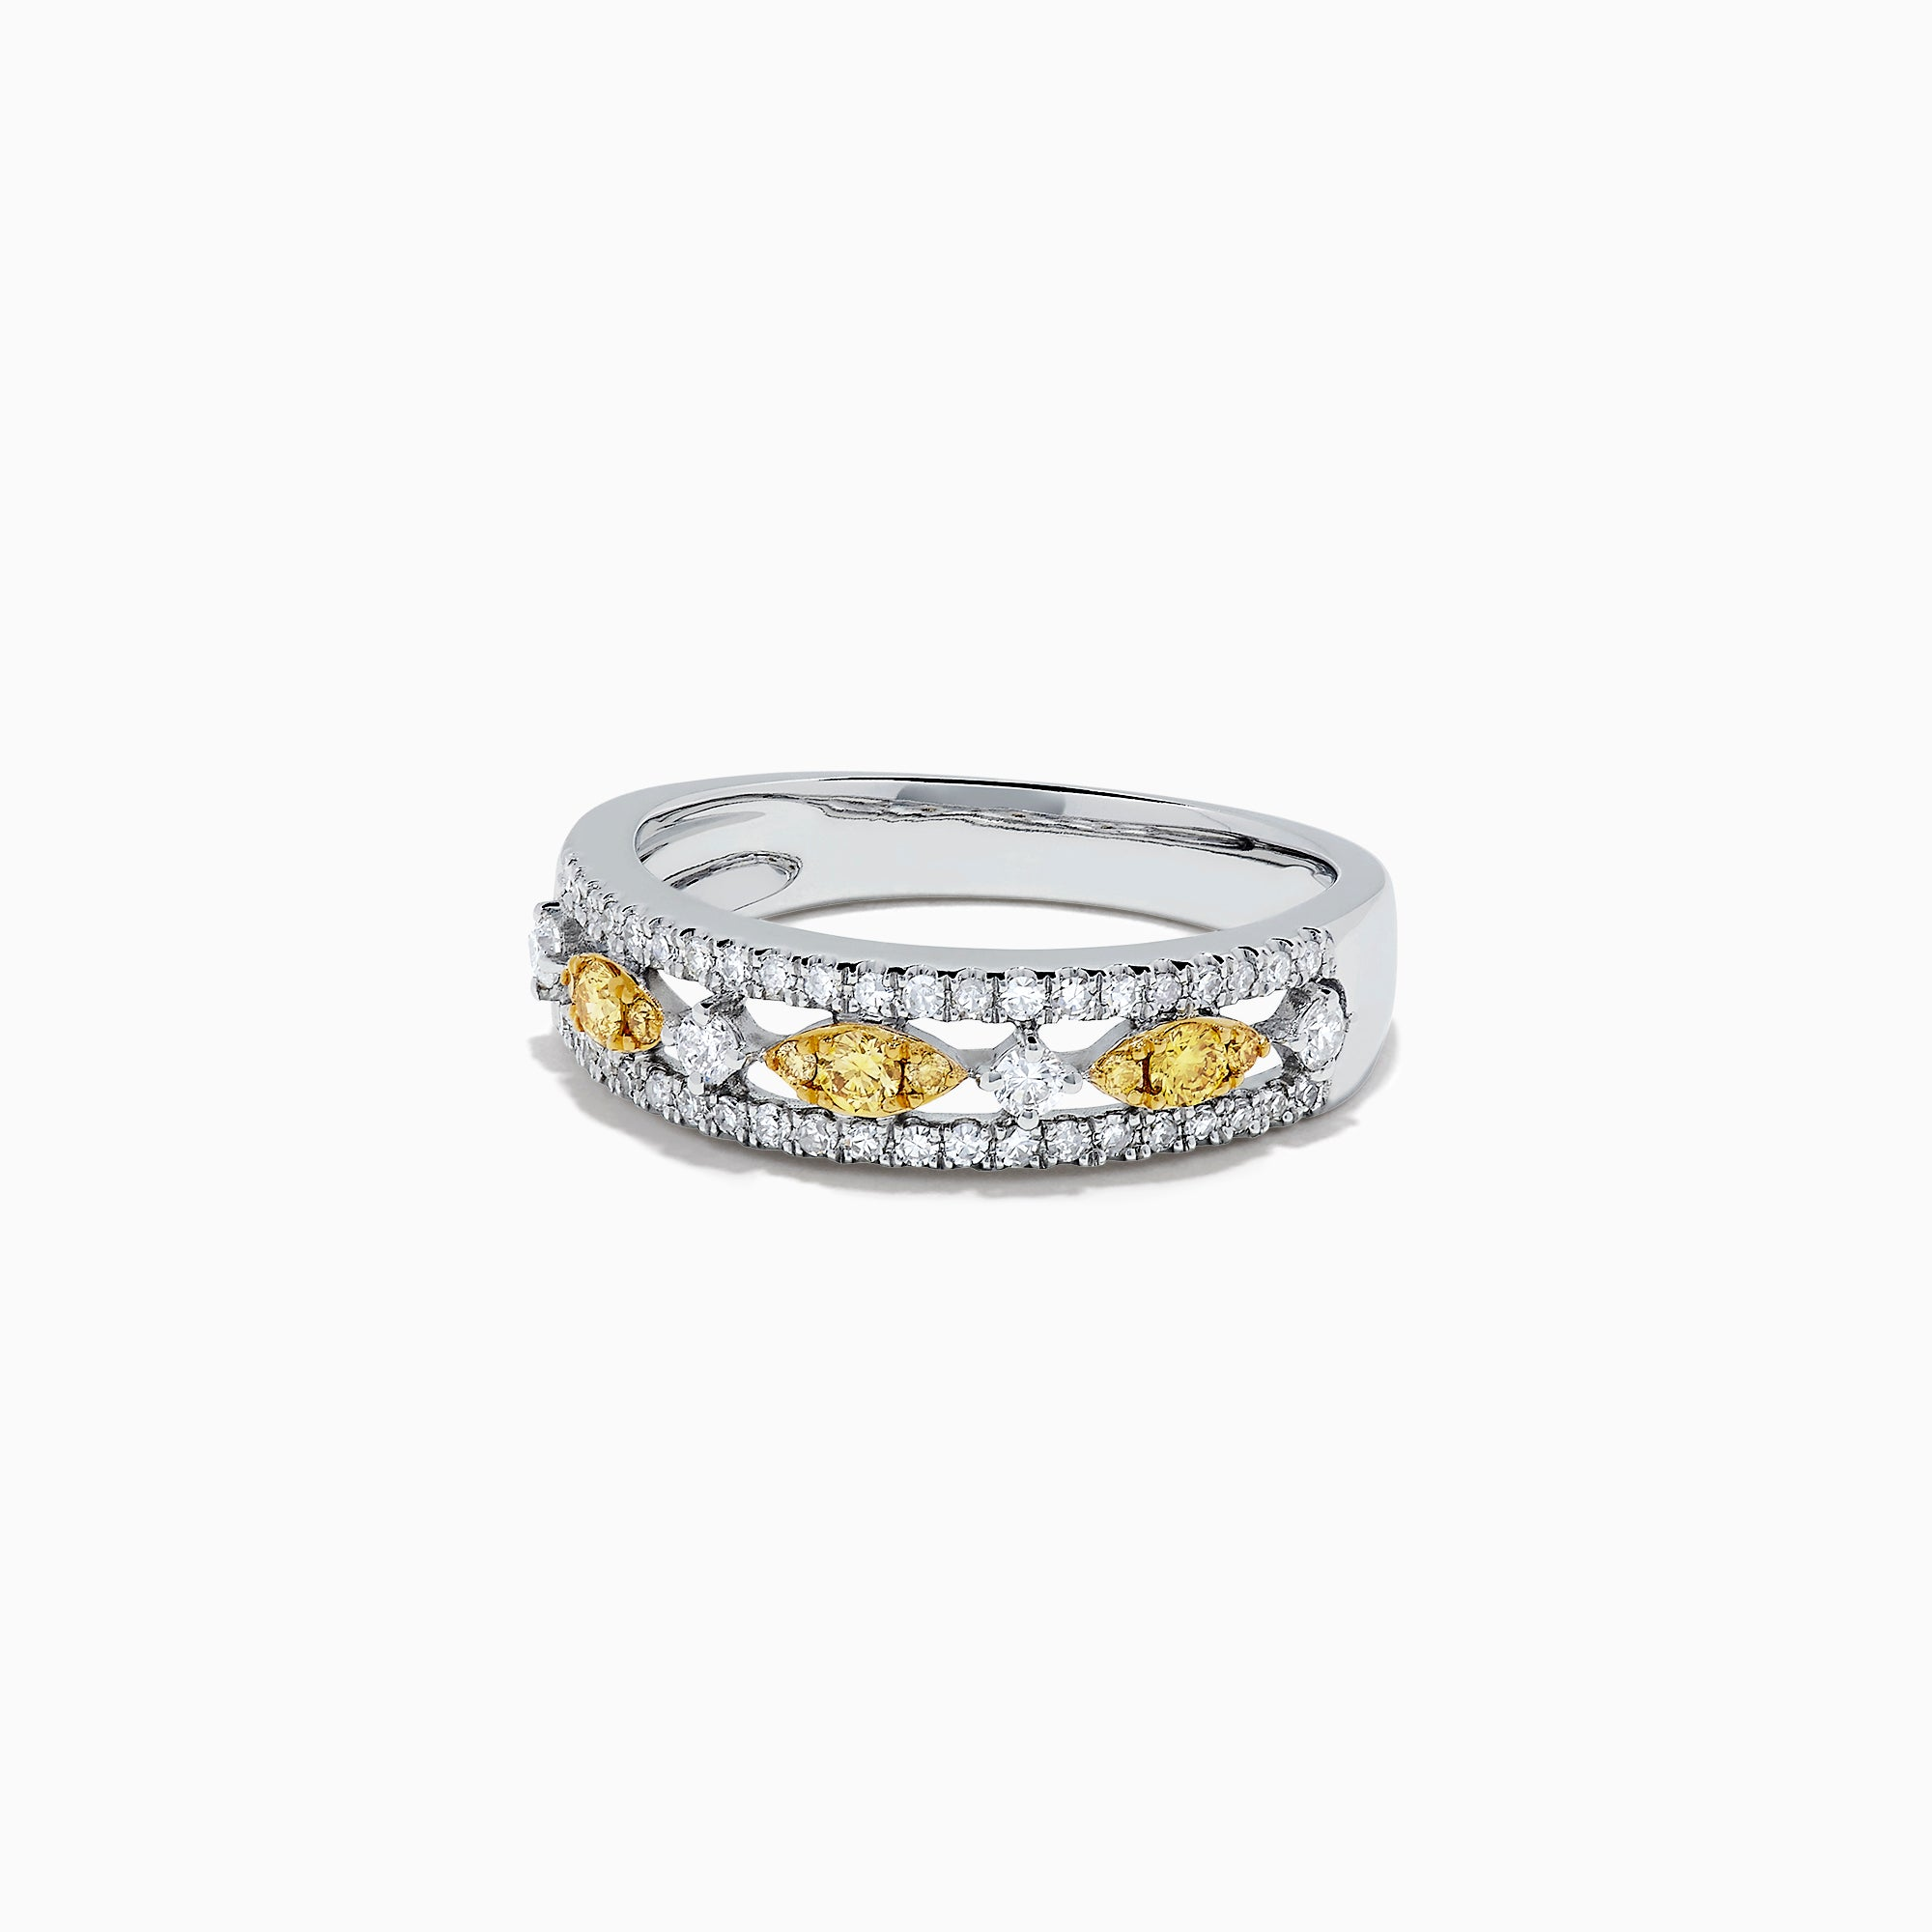 Effy Canare 14K White Gold Yellow and White Diamond Ring, 0.42 TCW